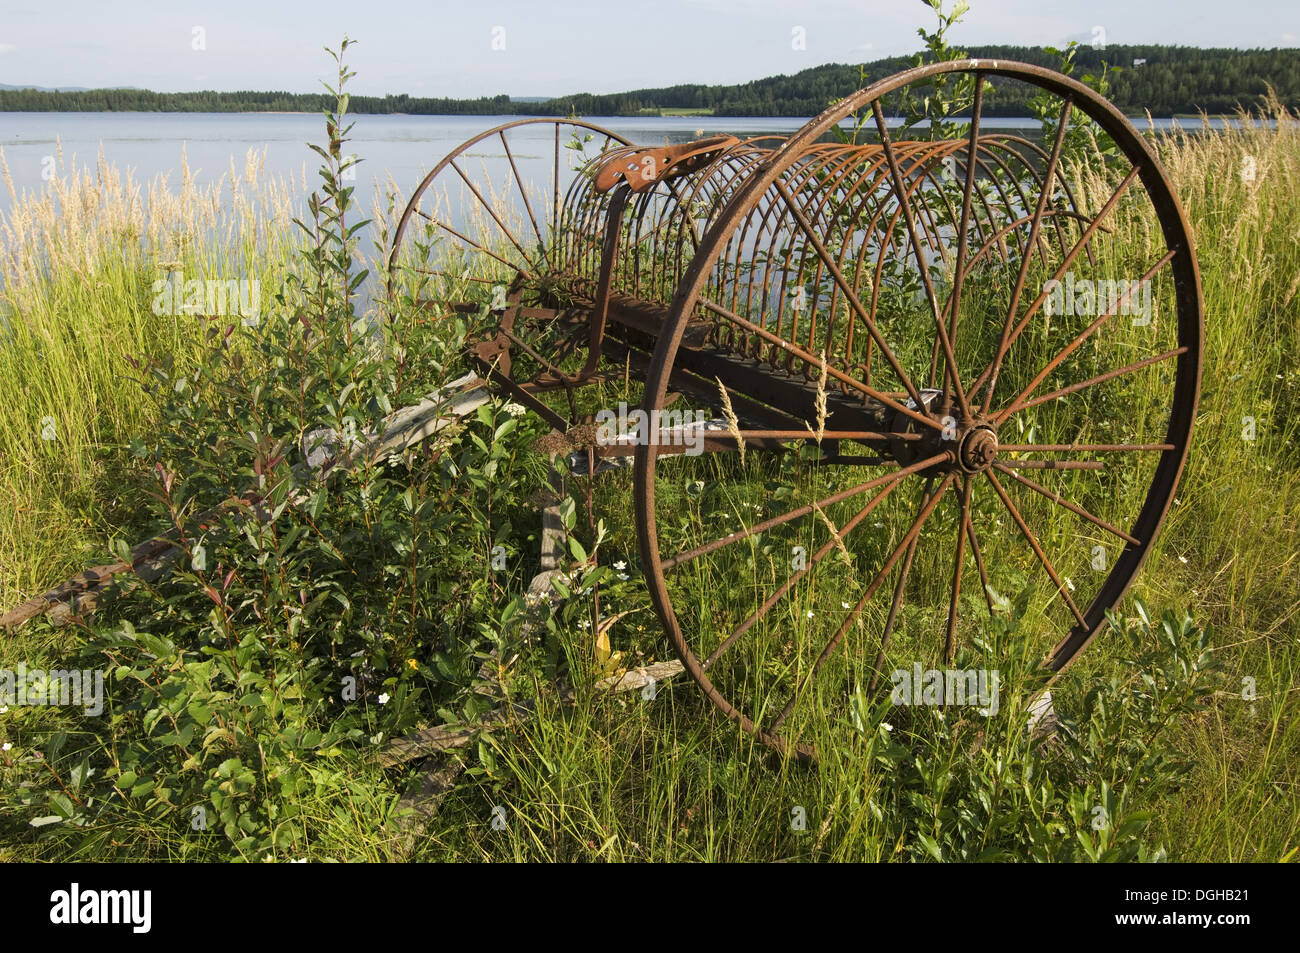 Rusty old-fashioned horse-drawn hay rake, at edge of water, Sweden - Stock Image